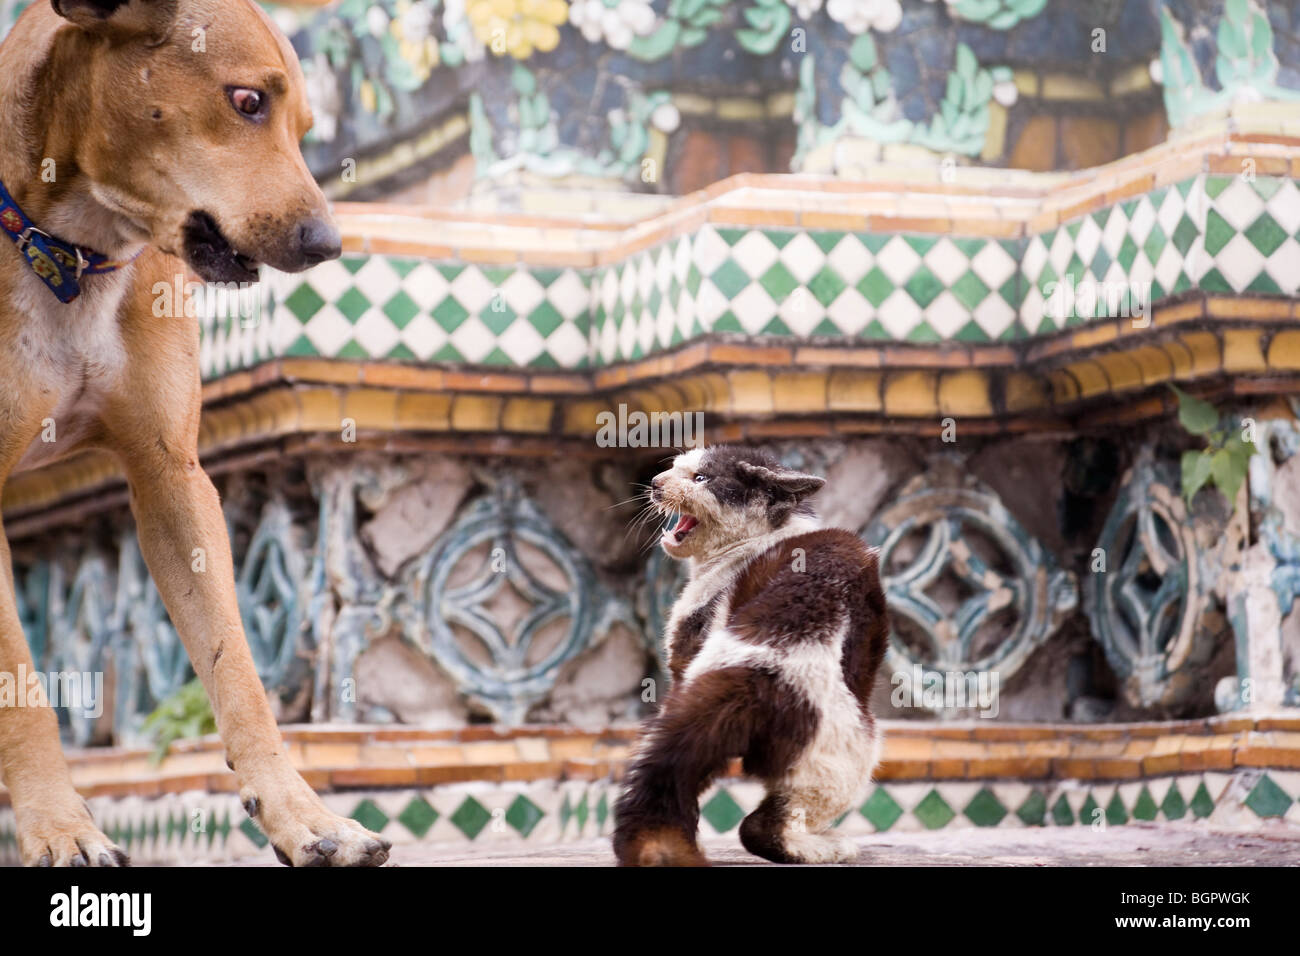 Cat and dog fight - Stock Image